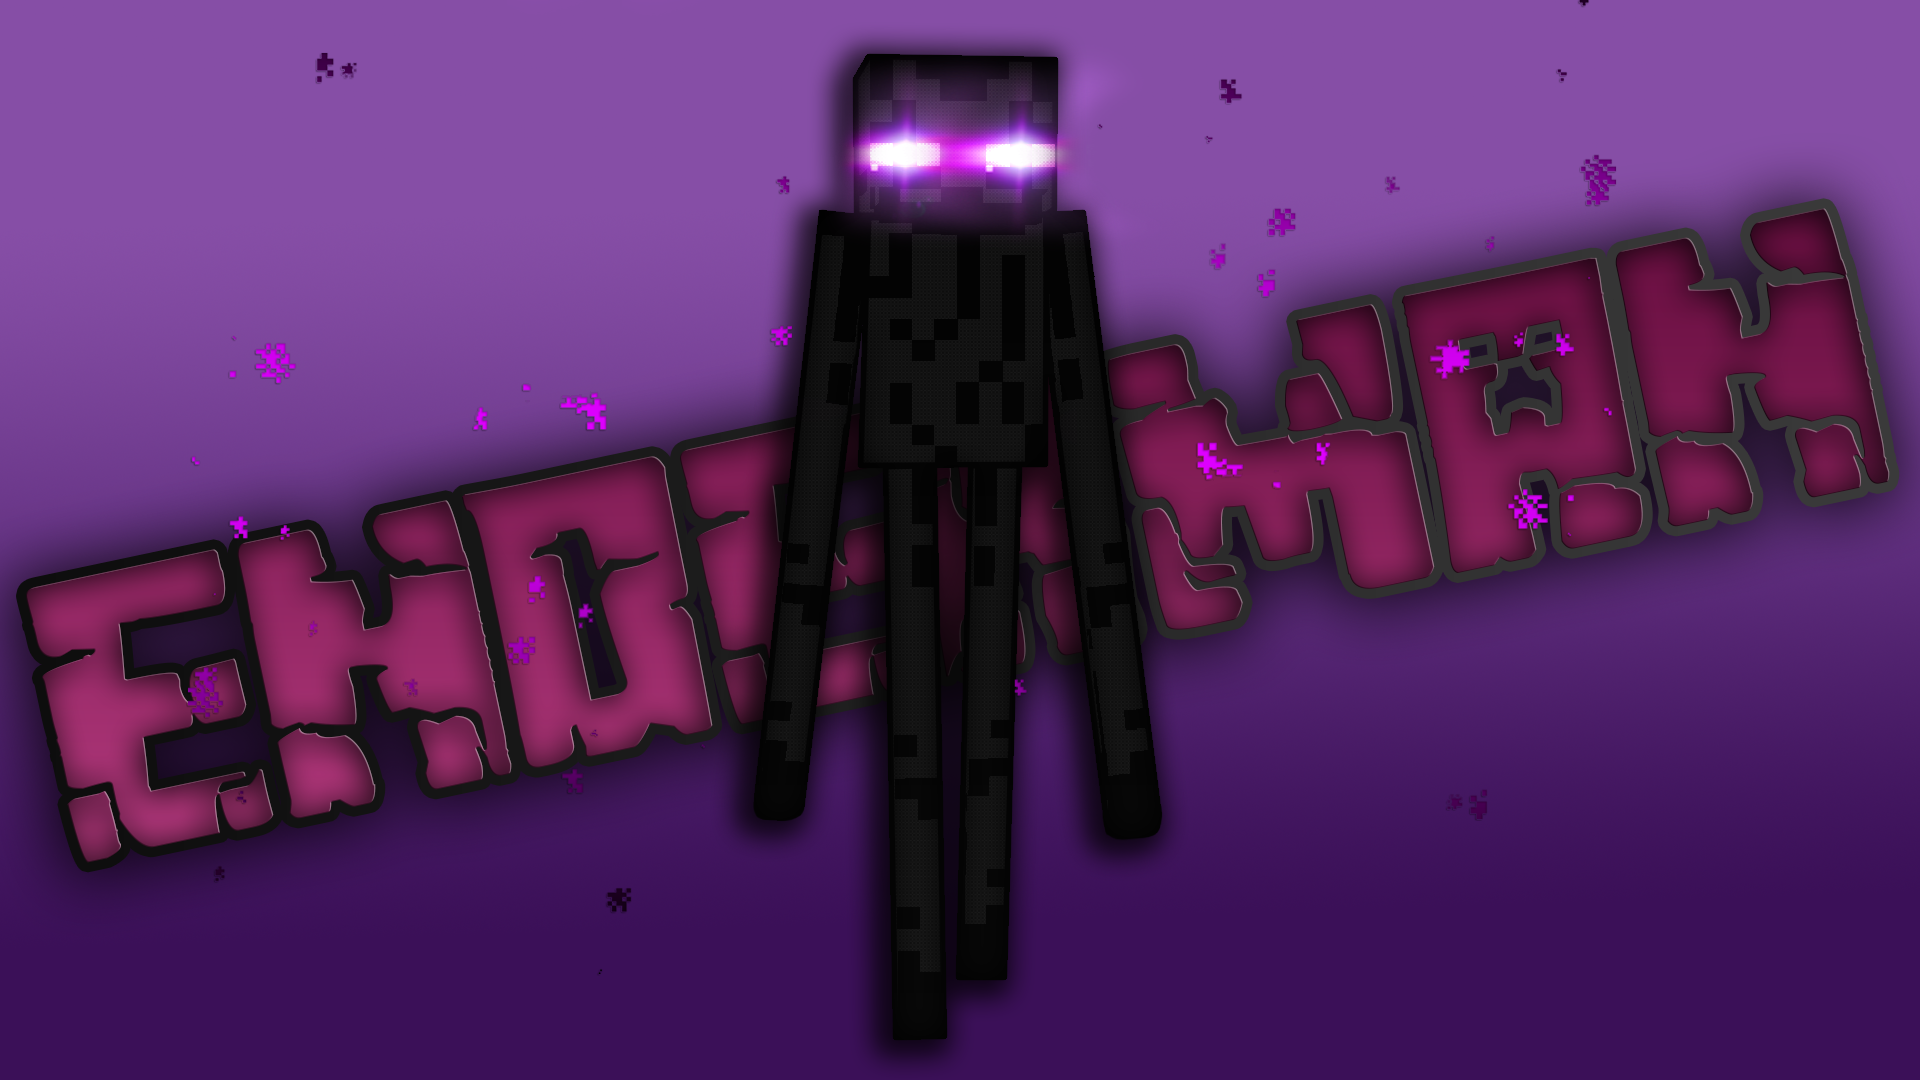 Enderman Minecraft Wallpaper 18834 Minecraft Wallpaper Hd Desktop